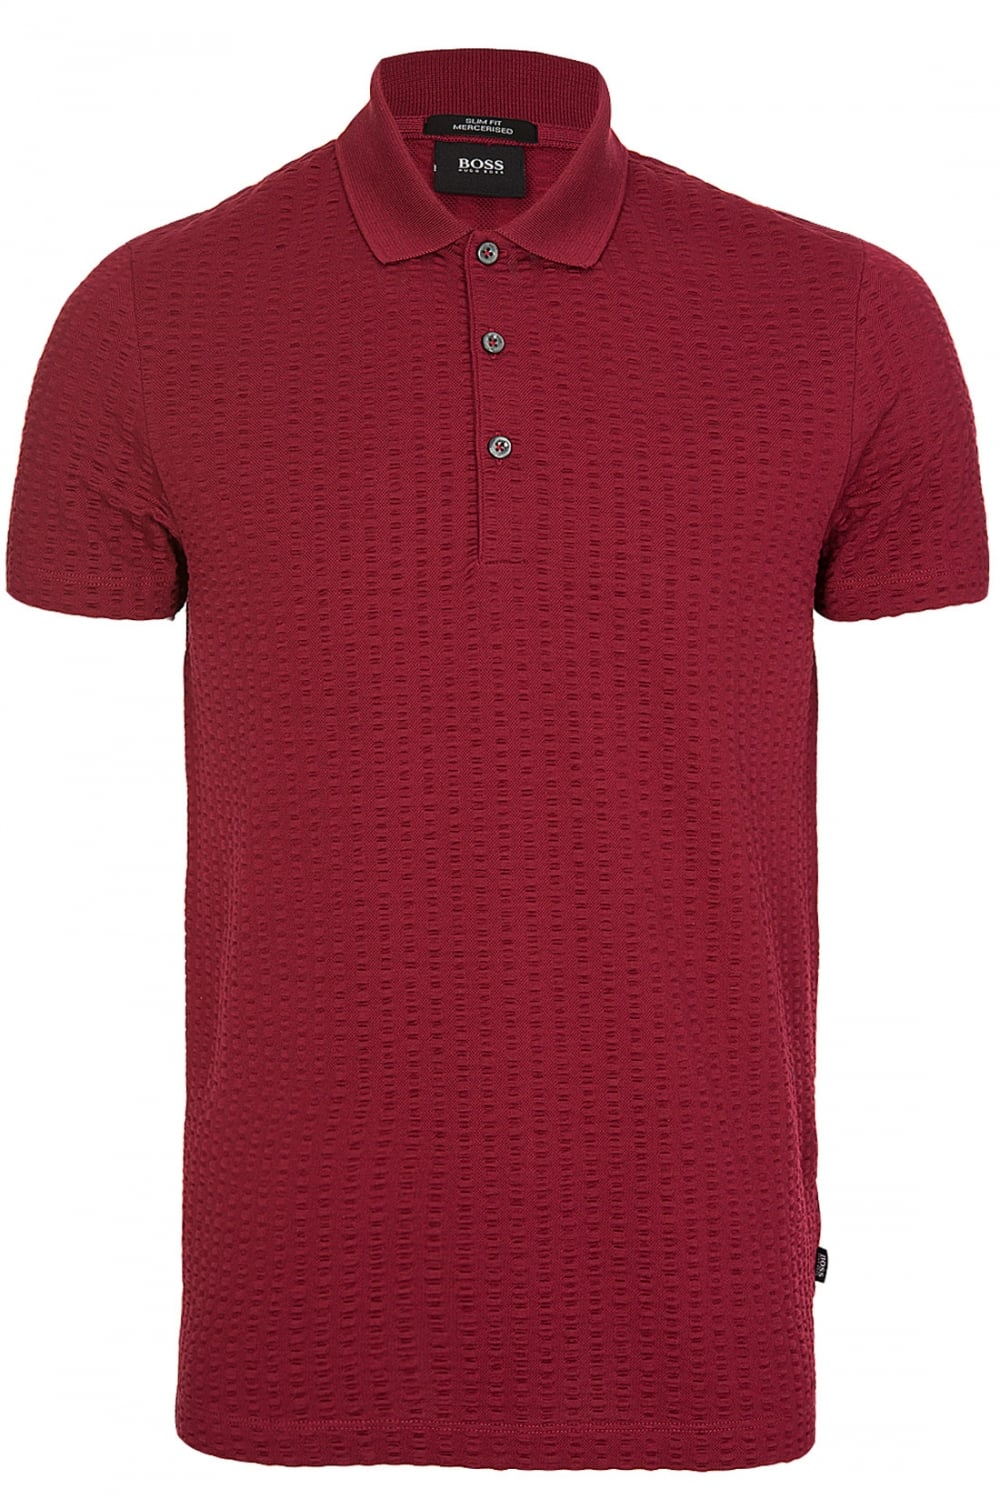 4a0662dd72c BOSS Hugo Boss Plater 01 Polo Red - Clothing from Circle Fashion UK